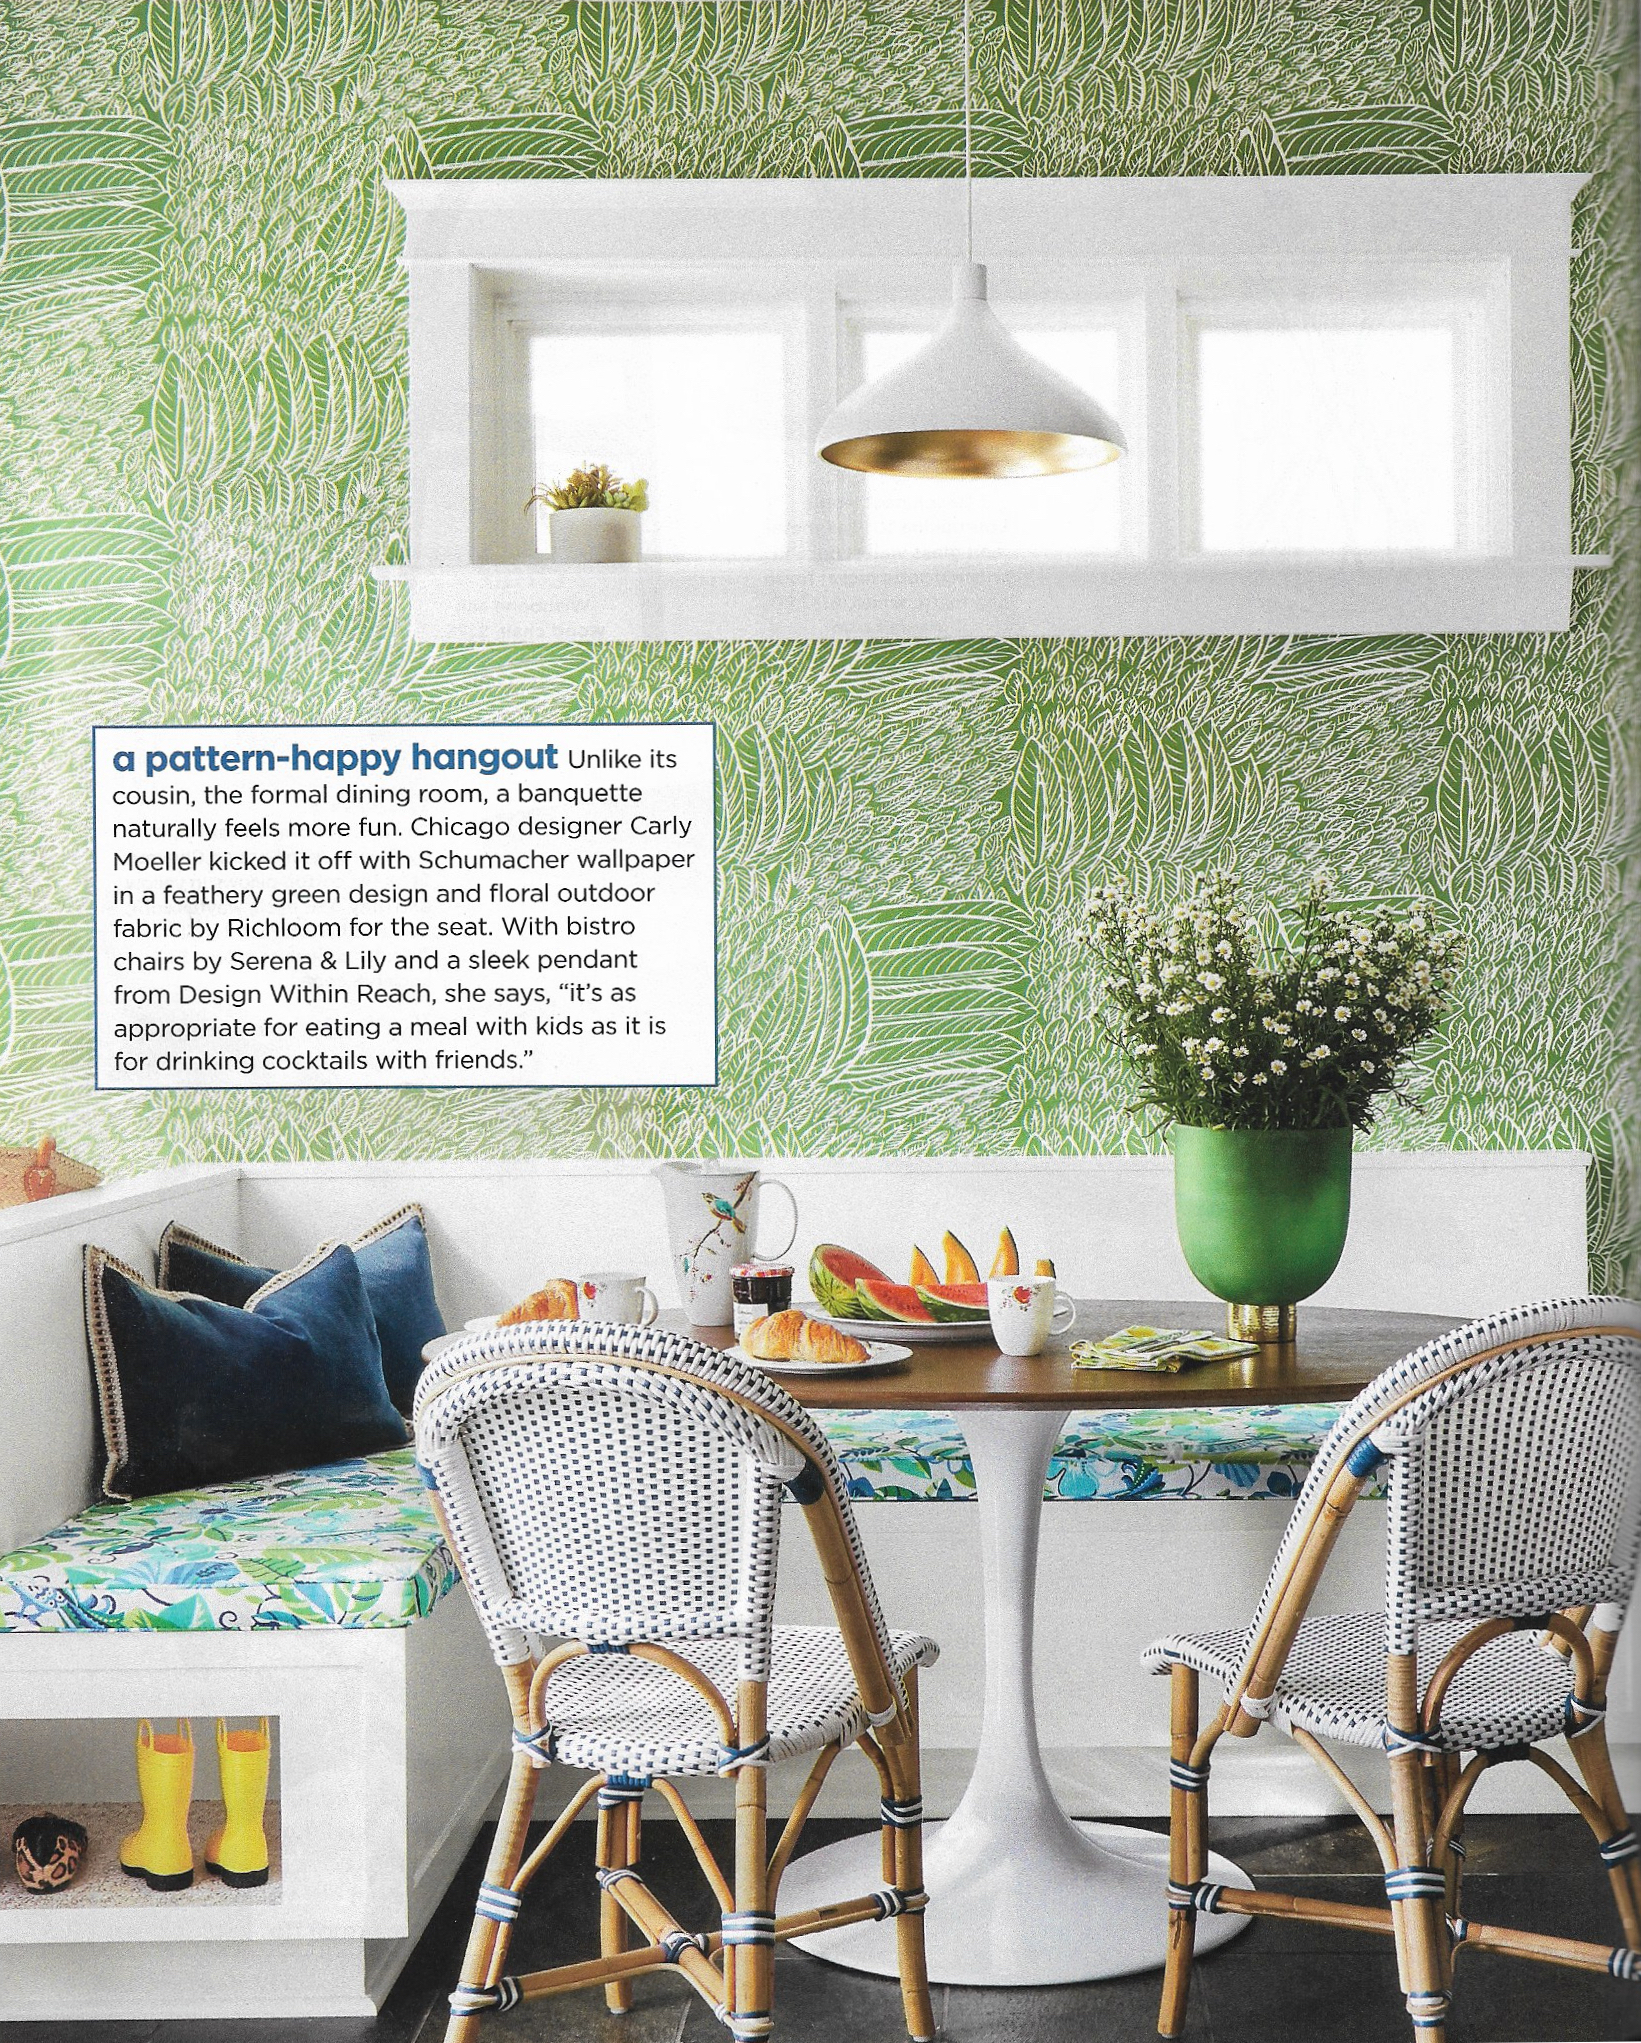 Unpatterned-HGTV-Kitchen-Banquette 2.jpg